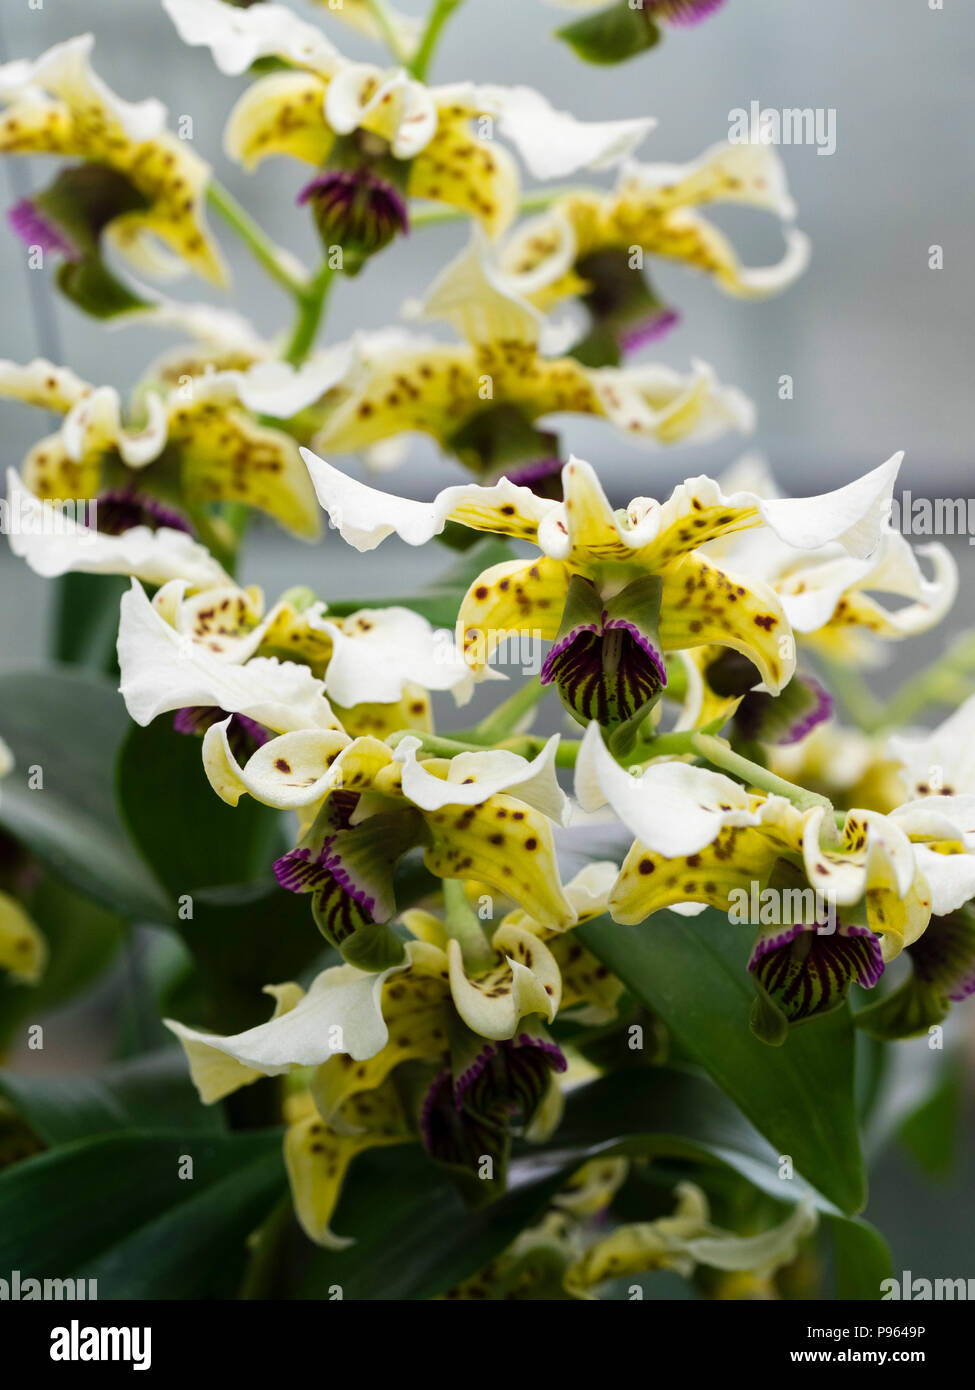 Spotted cream flowers and dark violet lip of the New Guinea epiphytic orchid, Dendrobium atroviolaceum - Stock Image